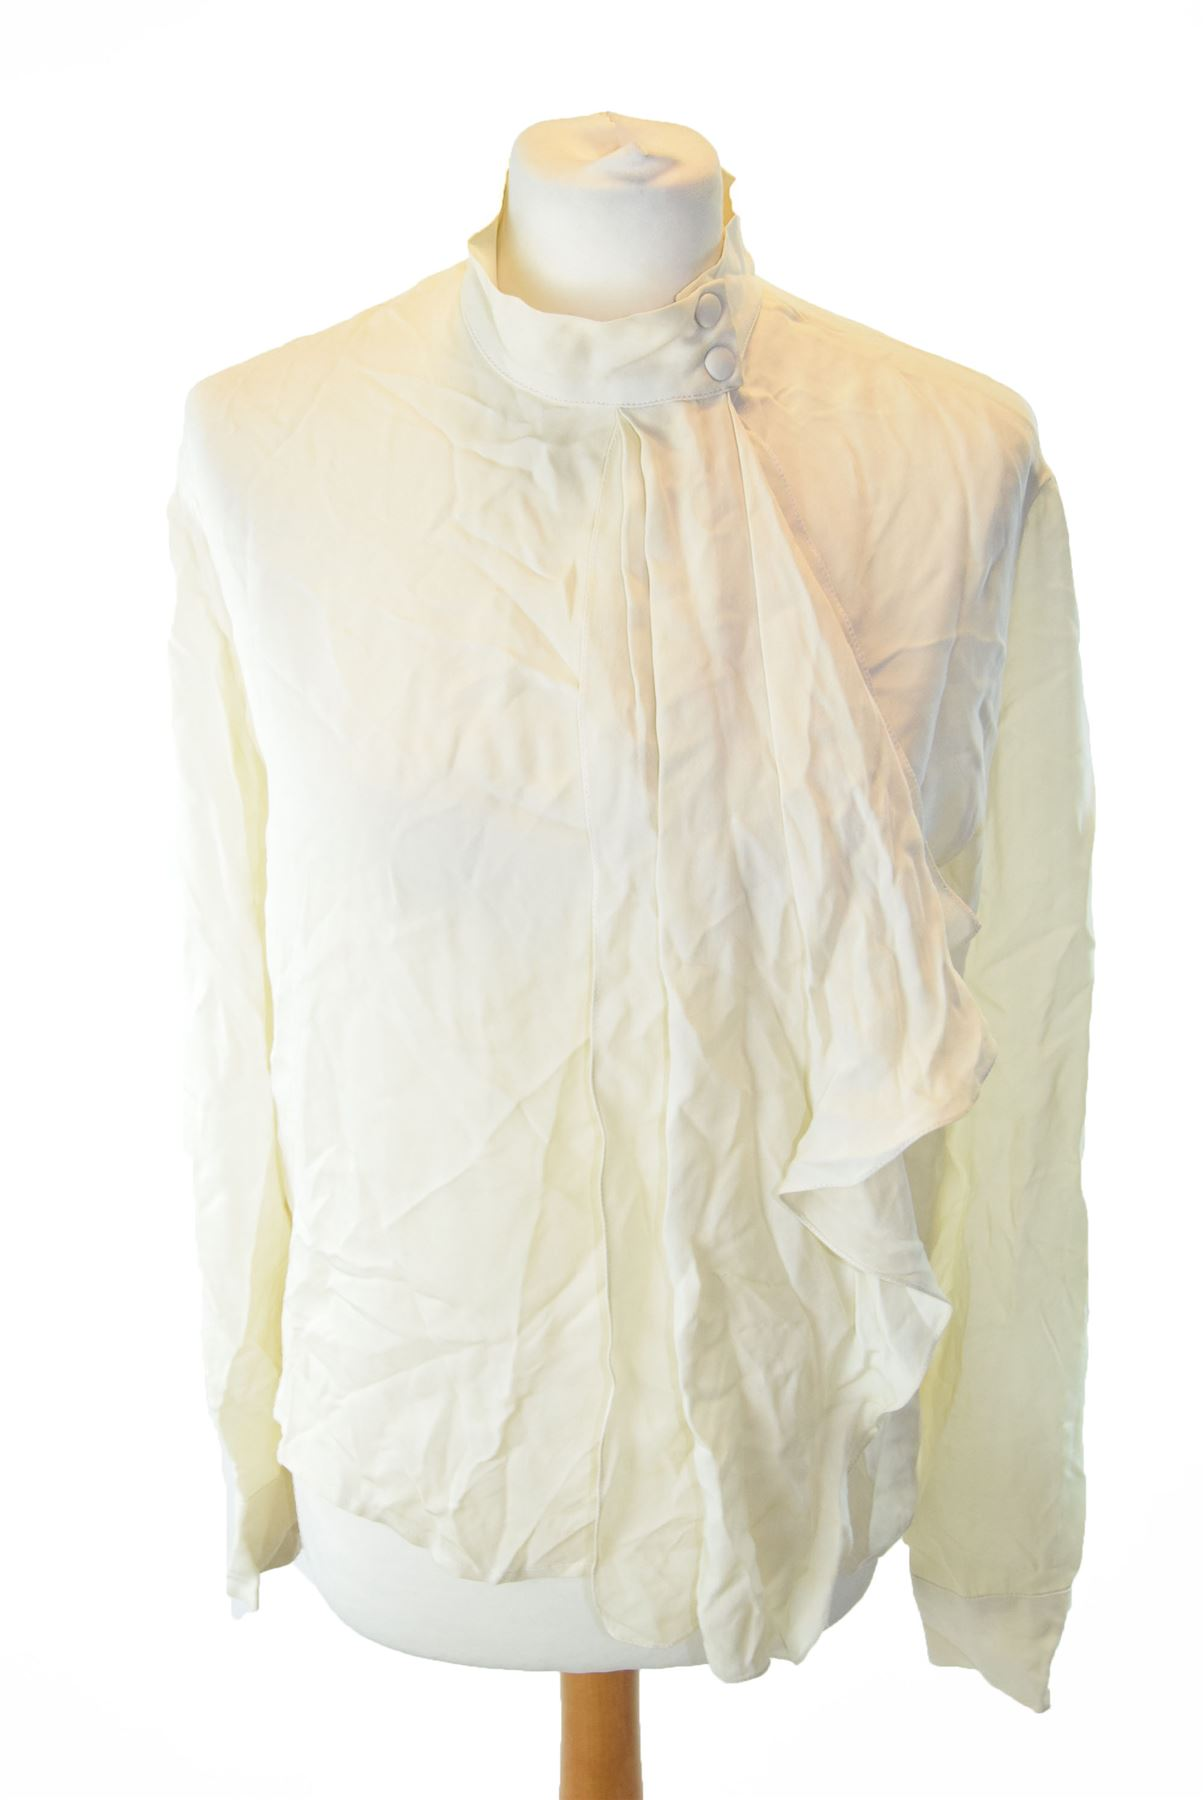 a963aa975fa7f CHLOE Cream 100% Silk Blouse With Ruffle Detail